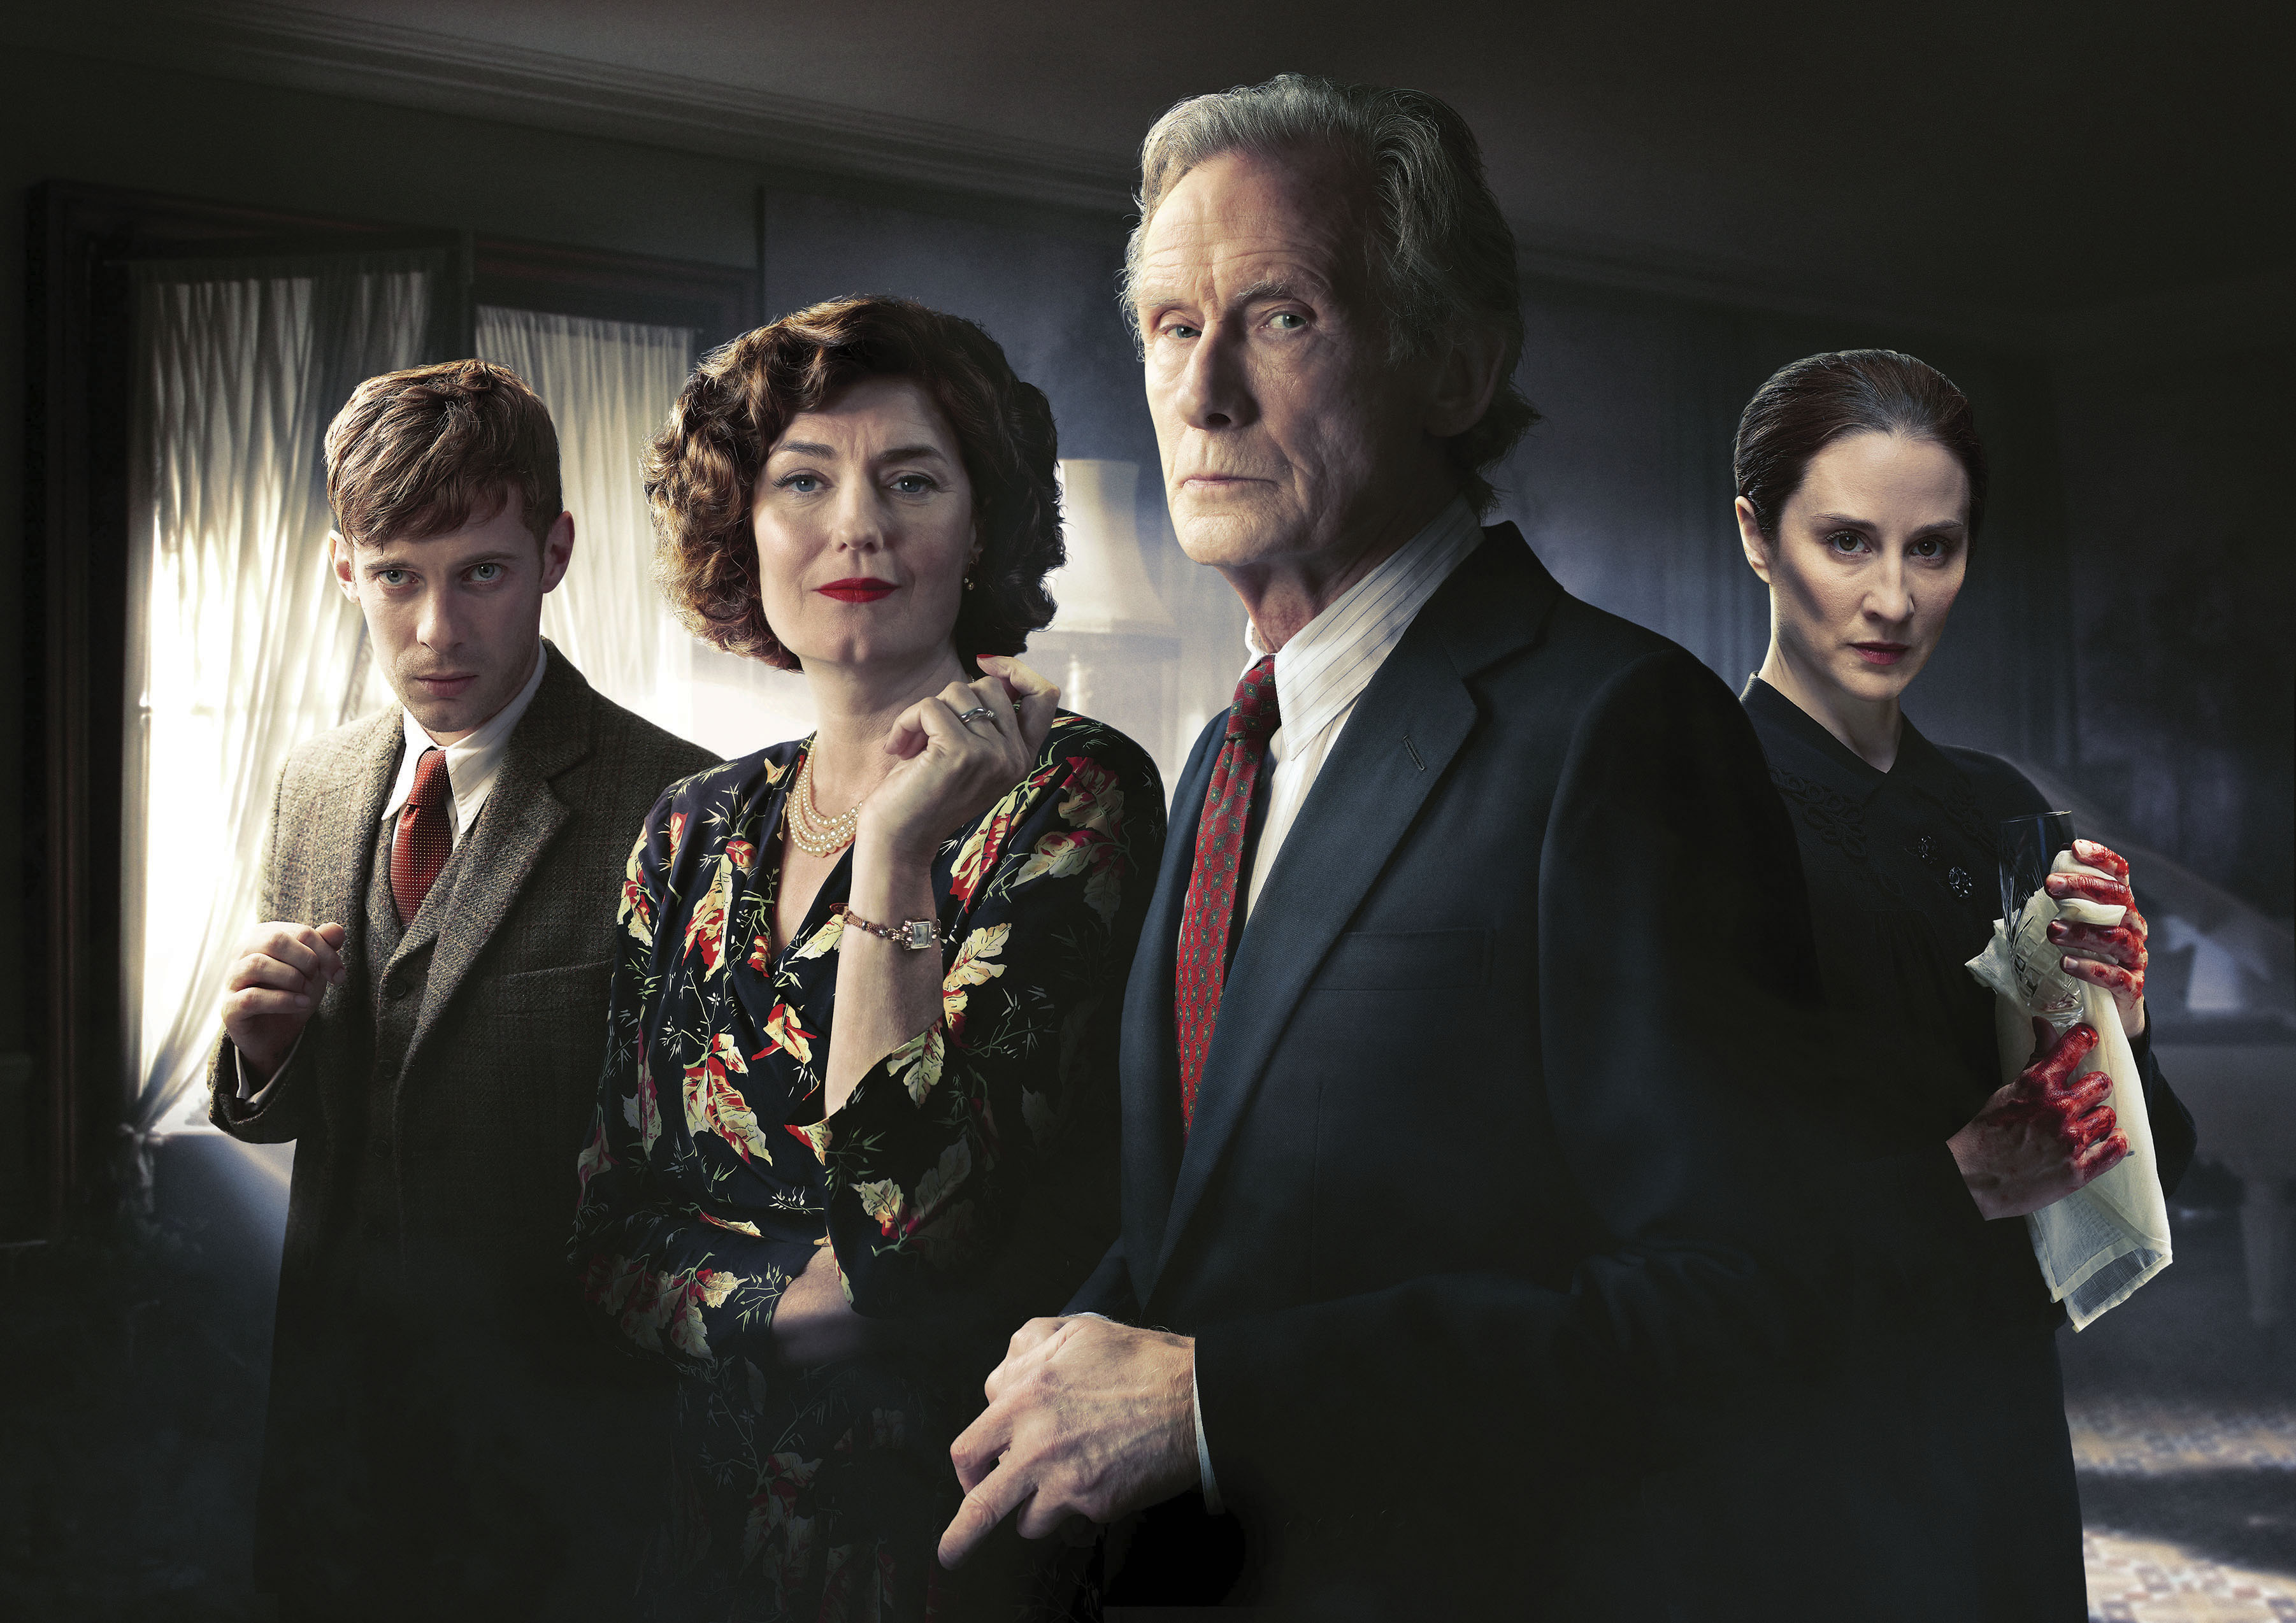 Programme Name: Ordeal By Innocence - TX: n/a - Episode: n/a (No. n/a) - Picture Shows:  Arthur Calgary (LUKE TREADAWAY), Rachel Argyll (ANNA CHANCELLOR), Leo Argyll (BILL NIGHY), Kirsten Lindstrom (MORVEN CHRISTIE) - (C) Mammoth Screen/ACL - Photographer: James Fisher/Joss Barratt  BBC, TL